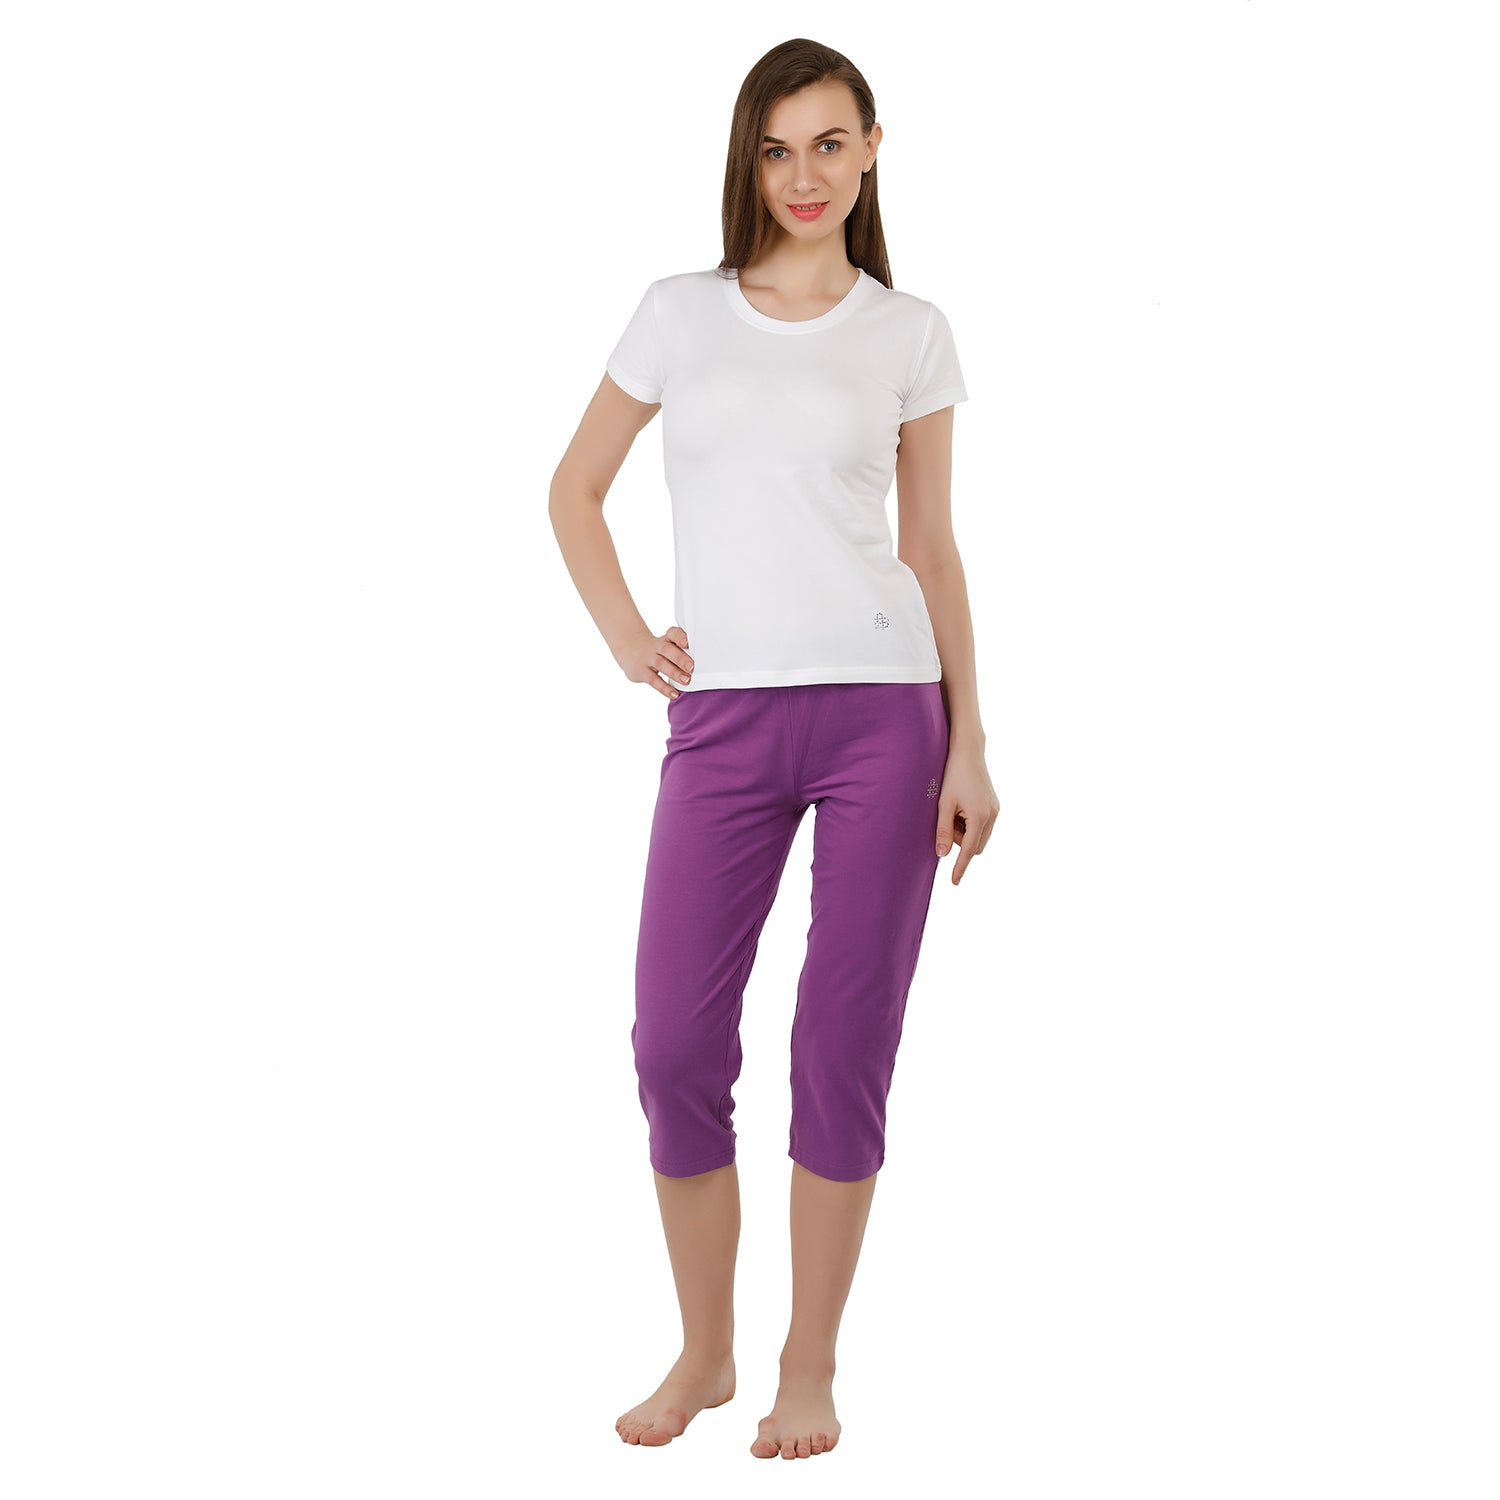 Women's Plain Knitted Capri - Blue - Bonjour Group